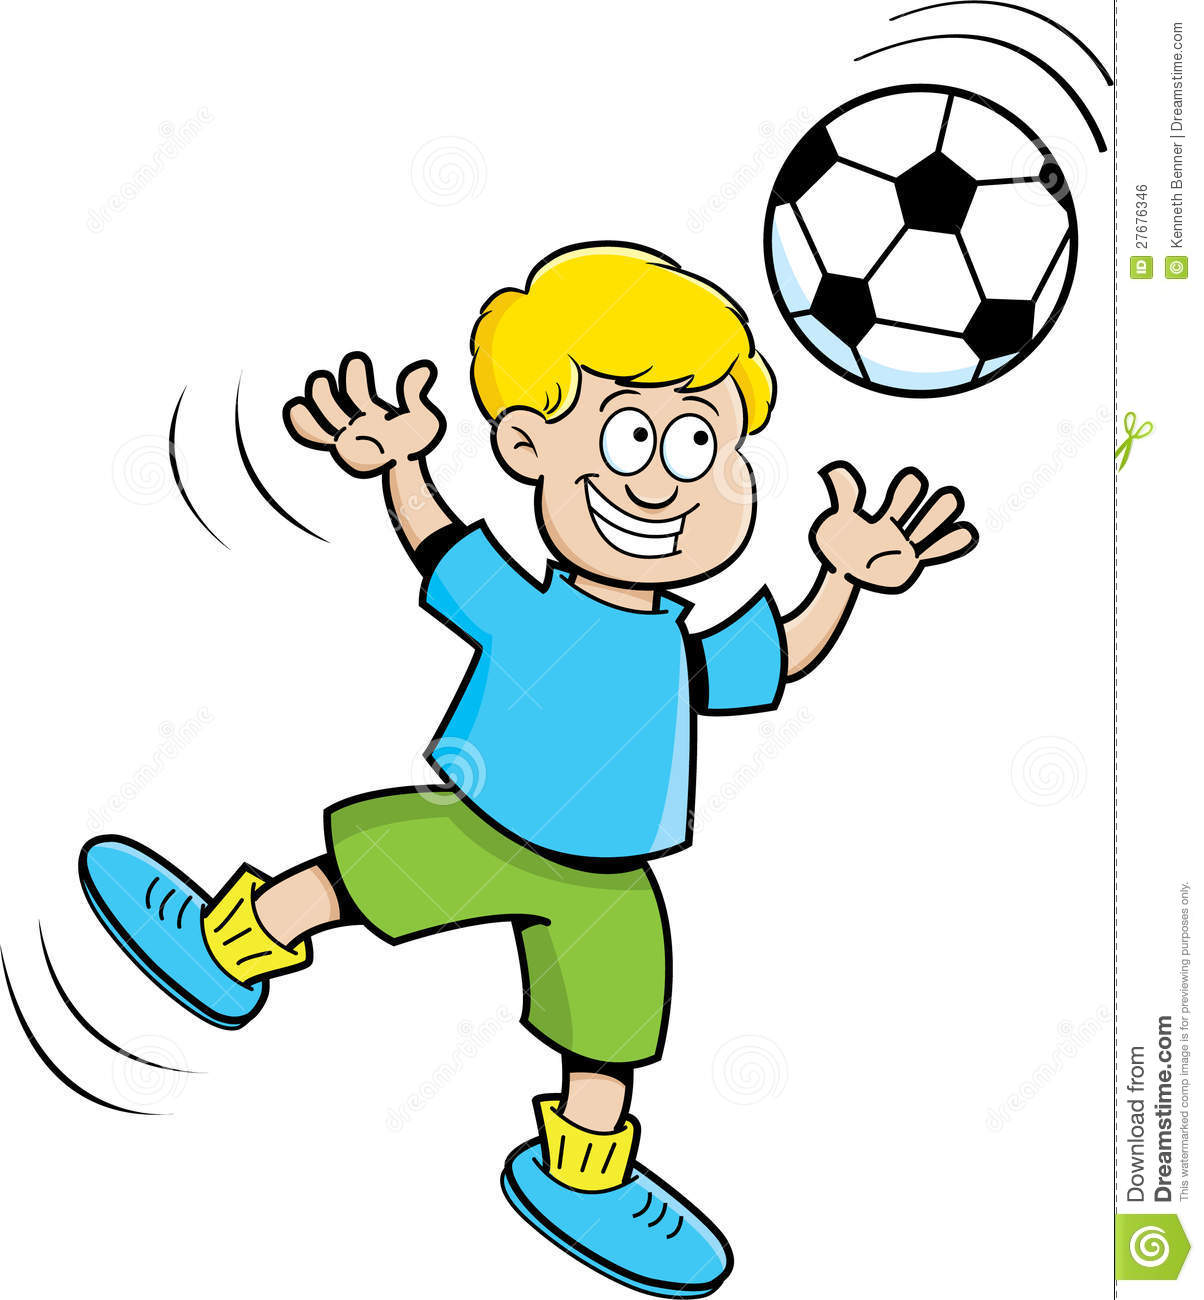 Celebrate clipart soccer. Cartoon boy playing panda